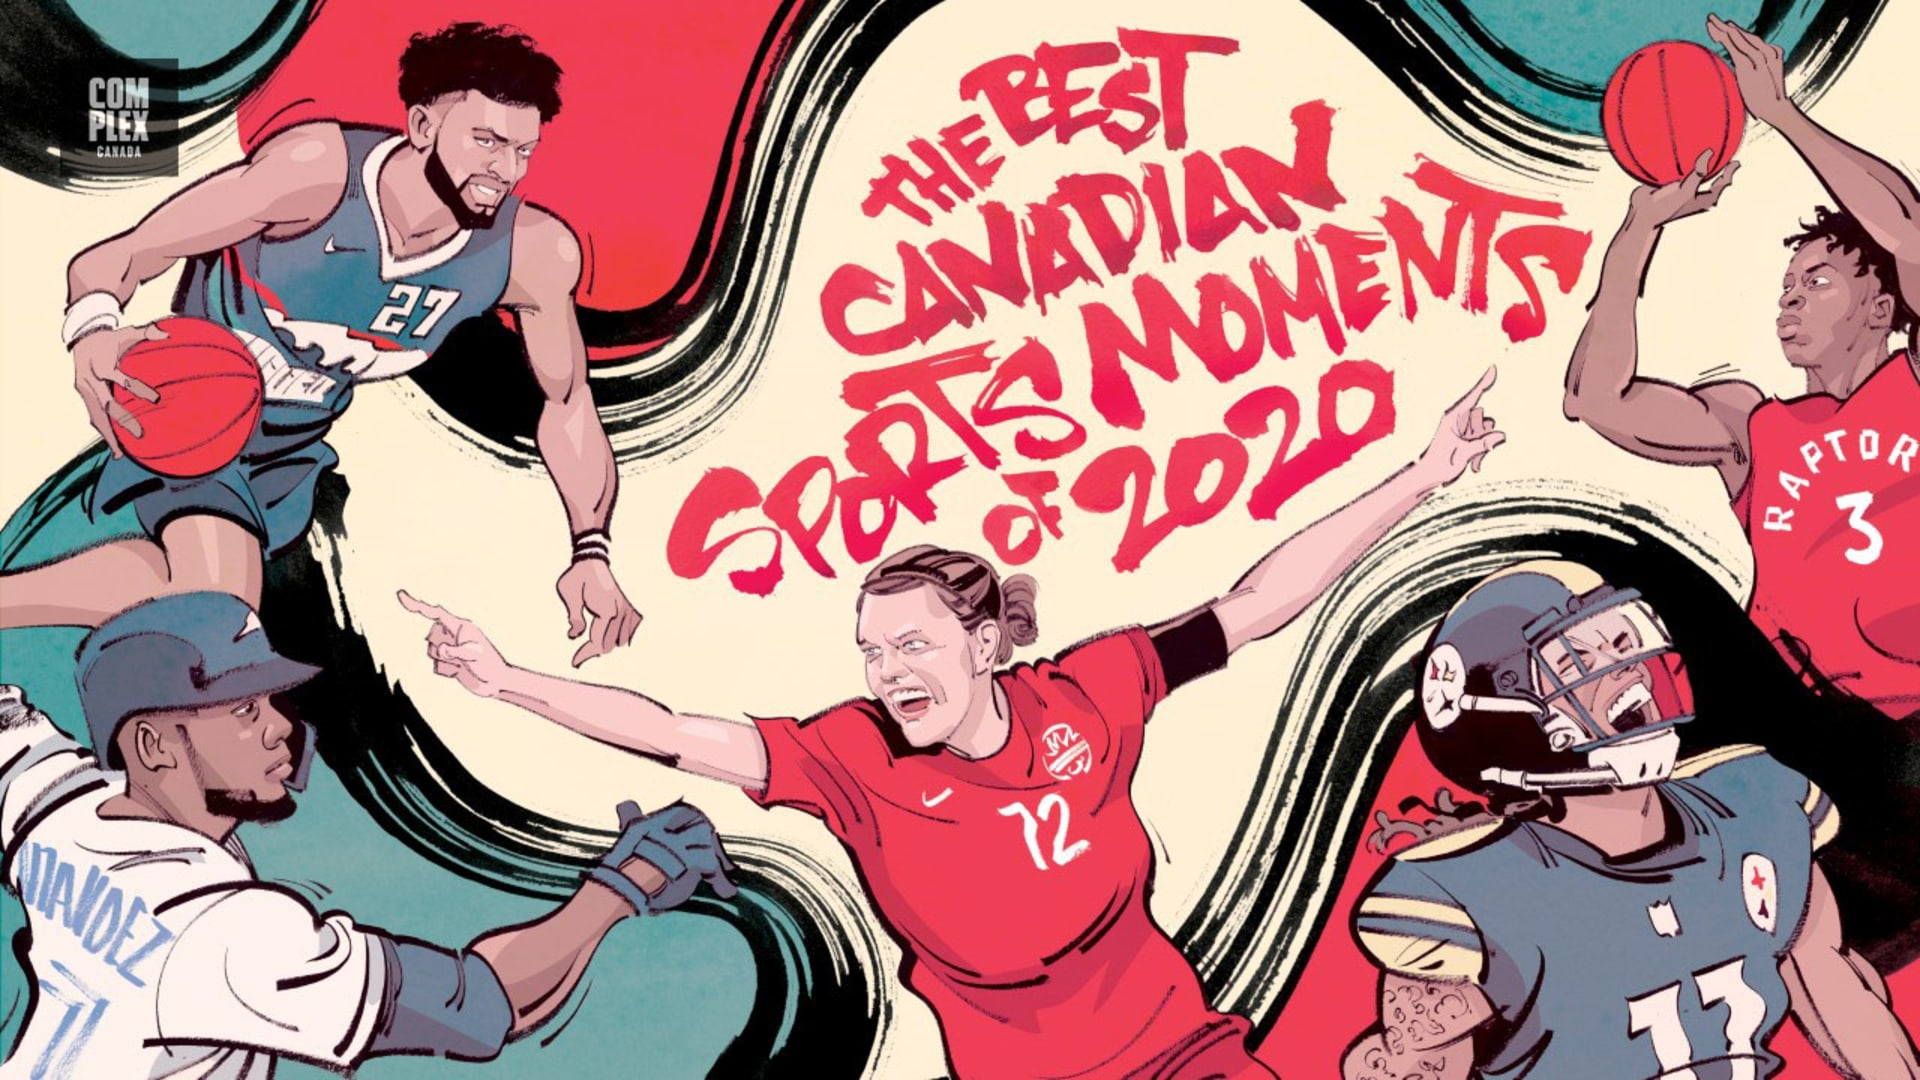 best canadian sports moments 2020 jamal murray og anunoby